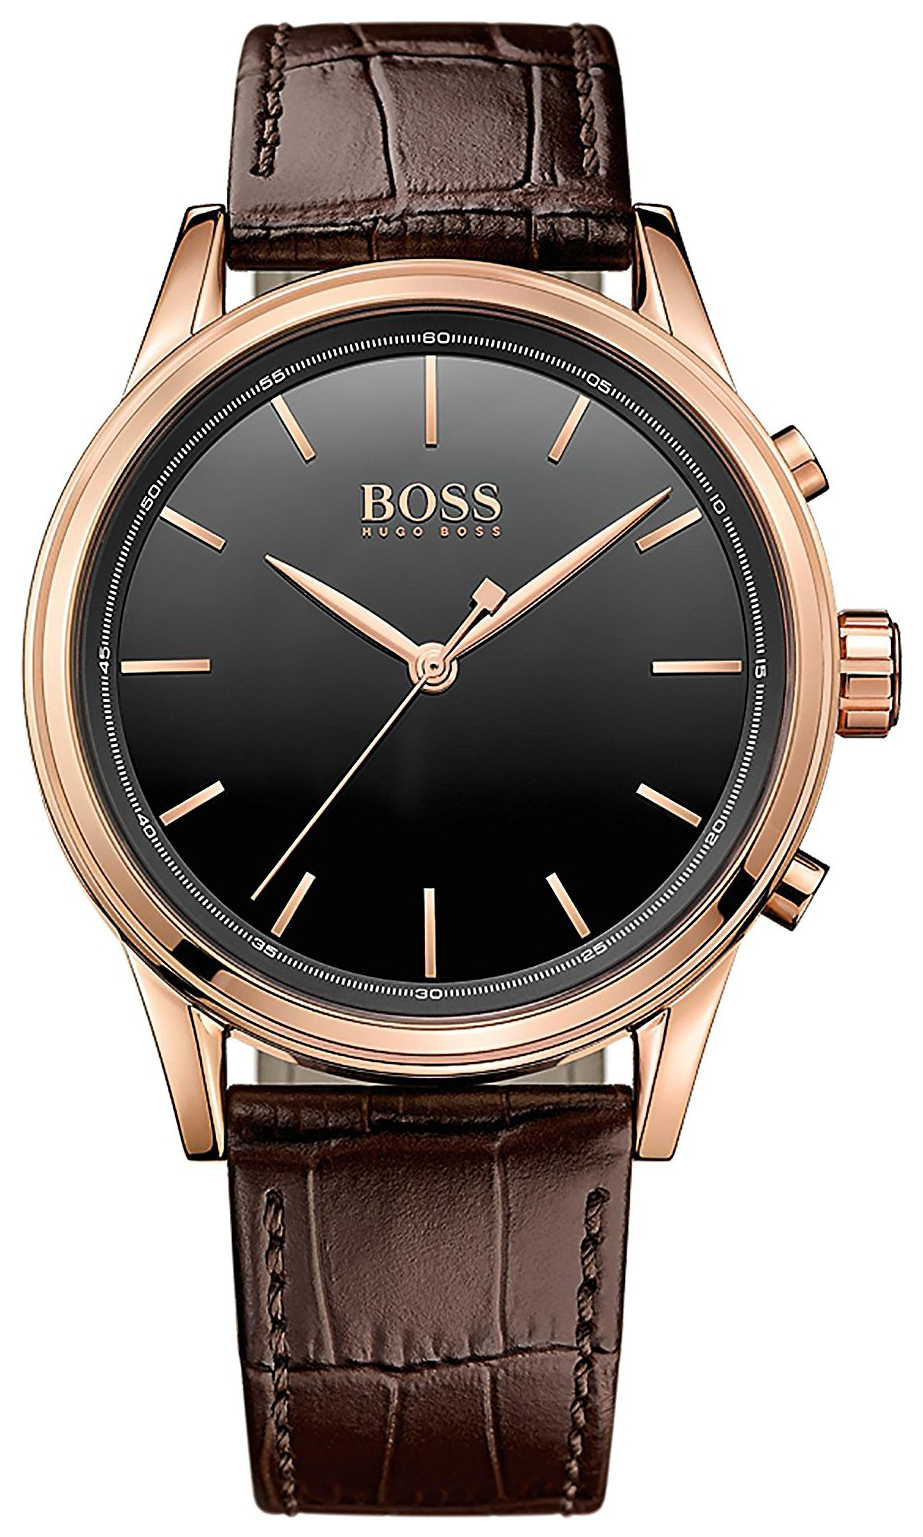 Hugo Boss Smart Herrklocka 1513451 Svart/Läder Ø44 mm - Hugo Boss